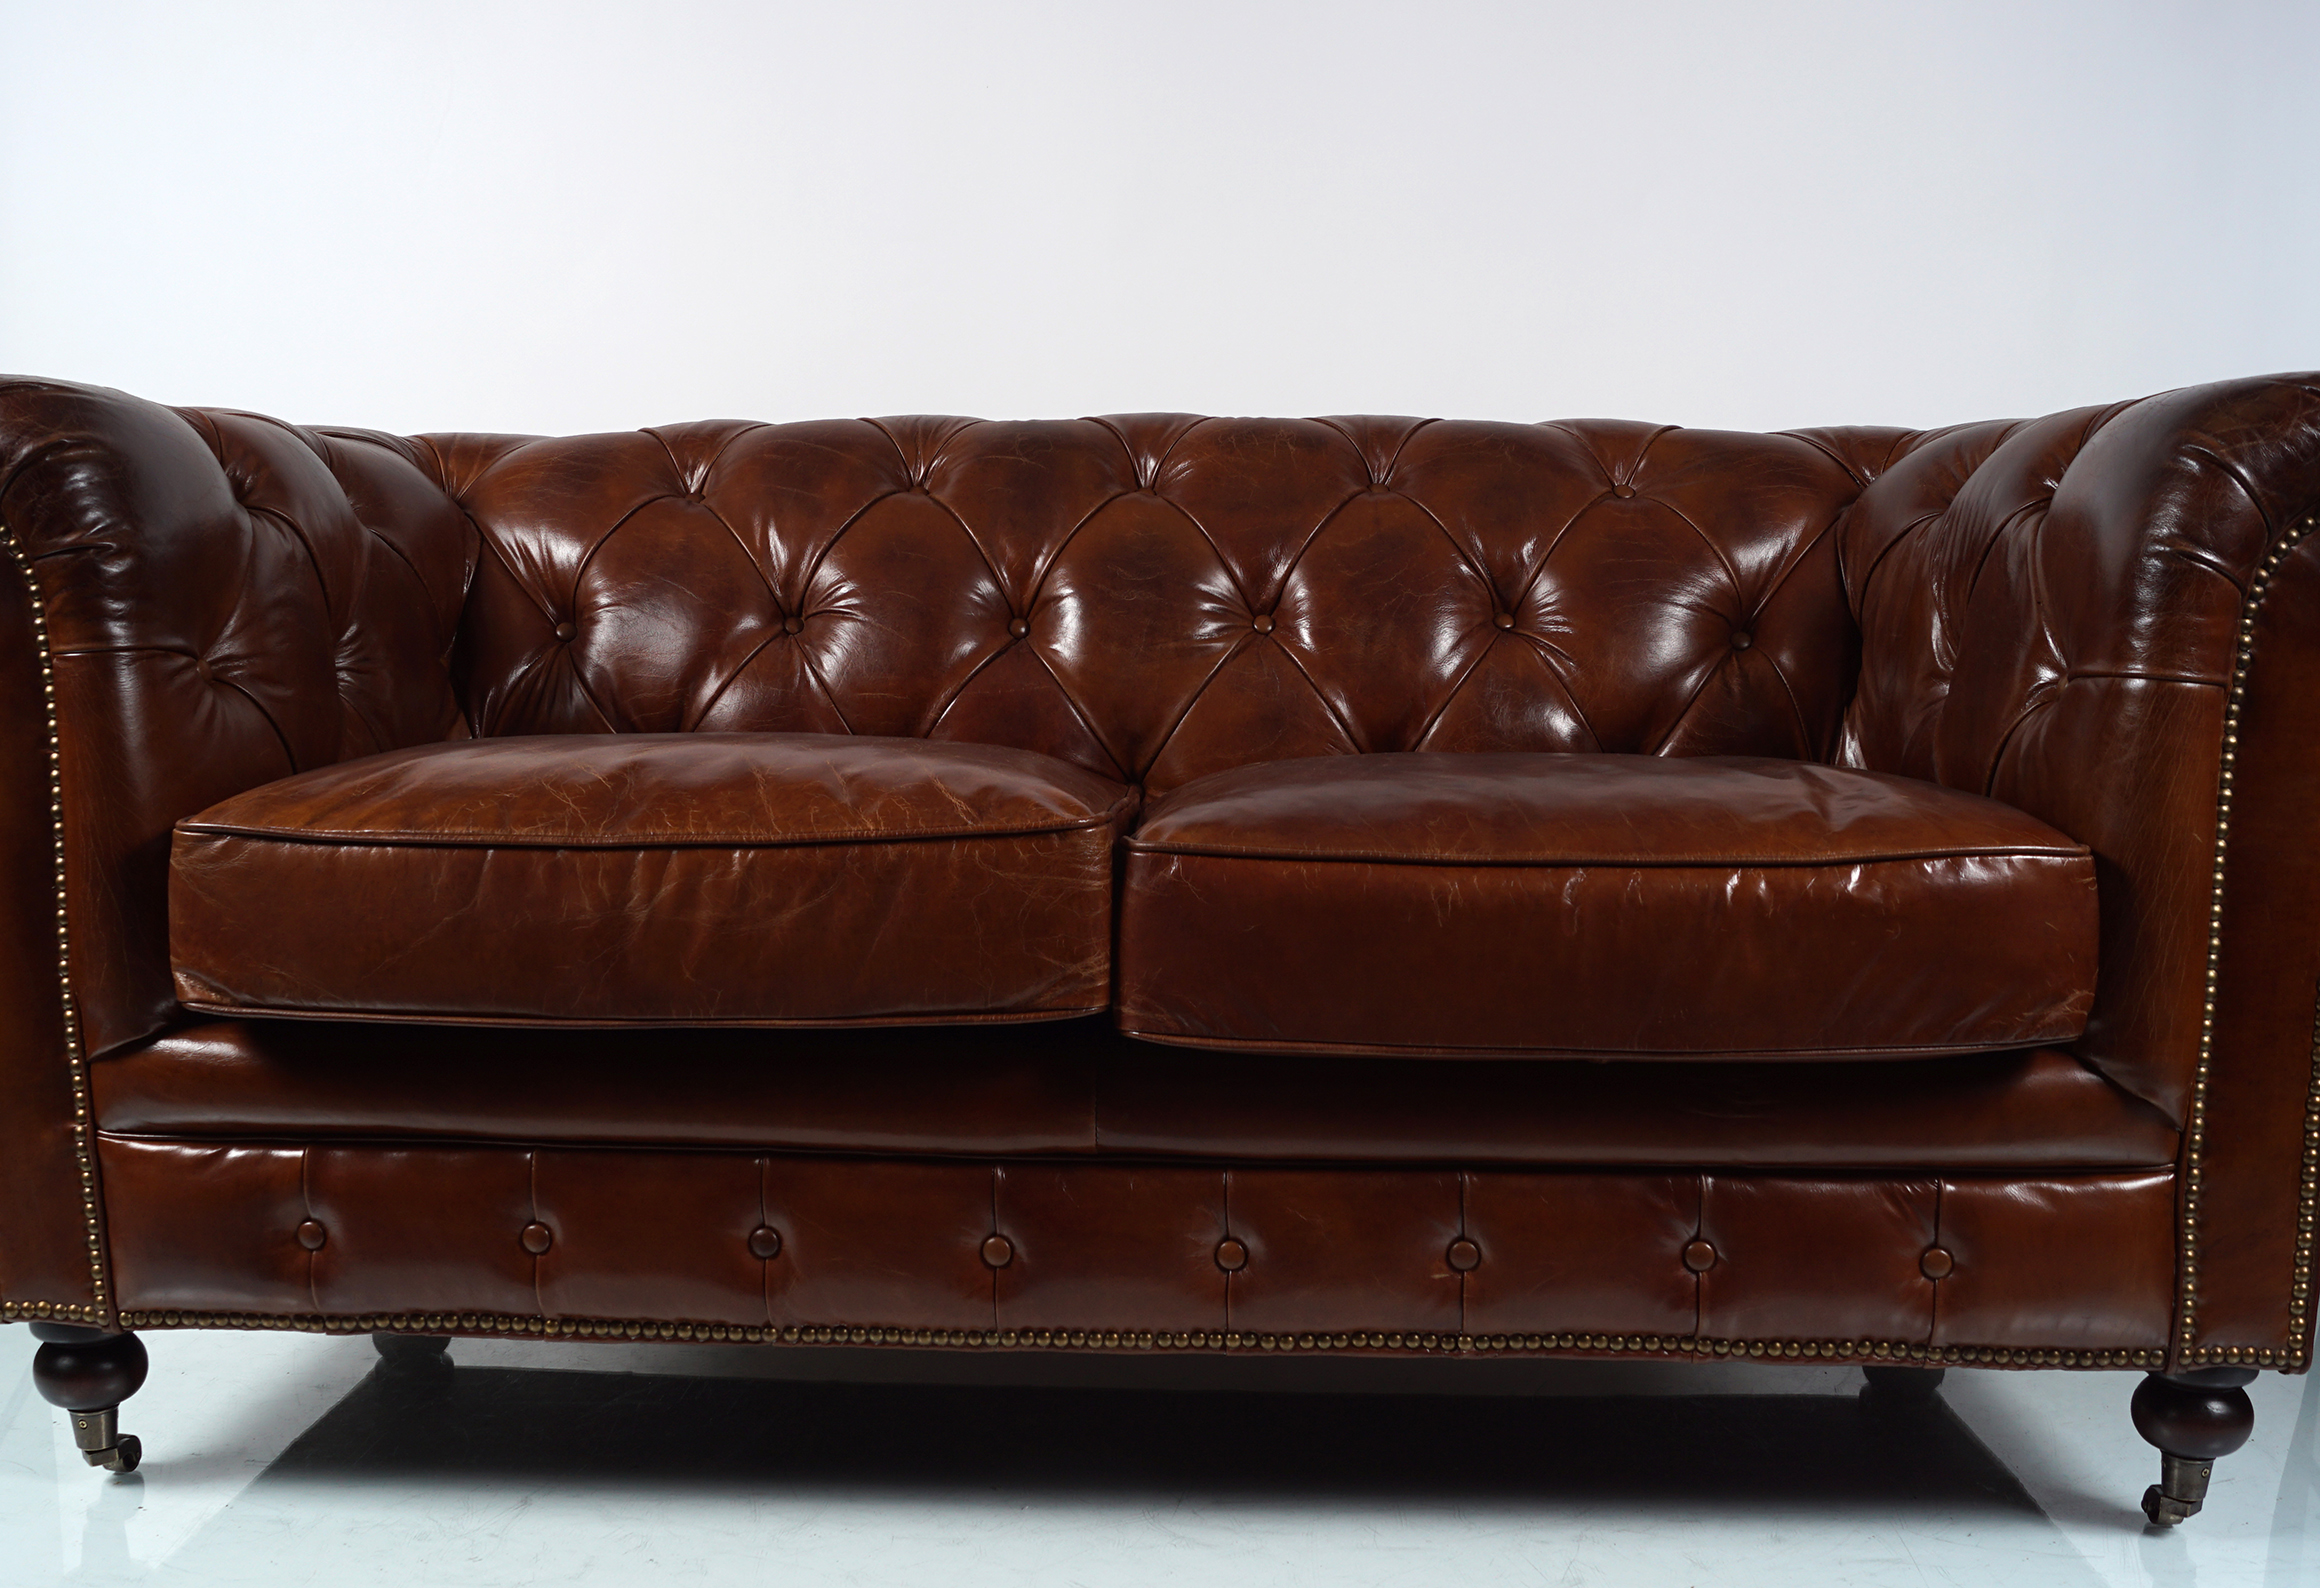 DEEP BUTTONED LEATHER CHESTERFIELD SETTEE - Image 2 of 4